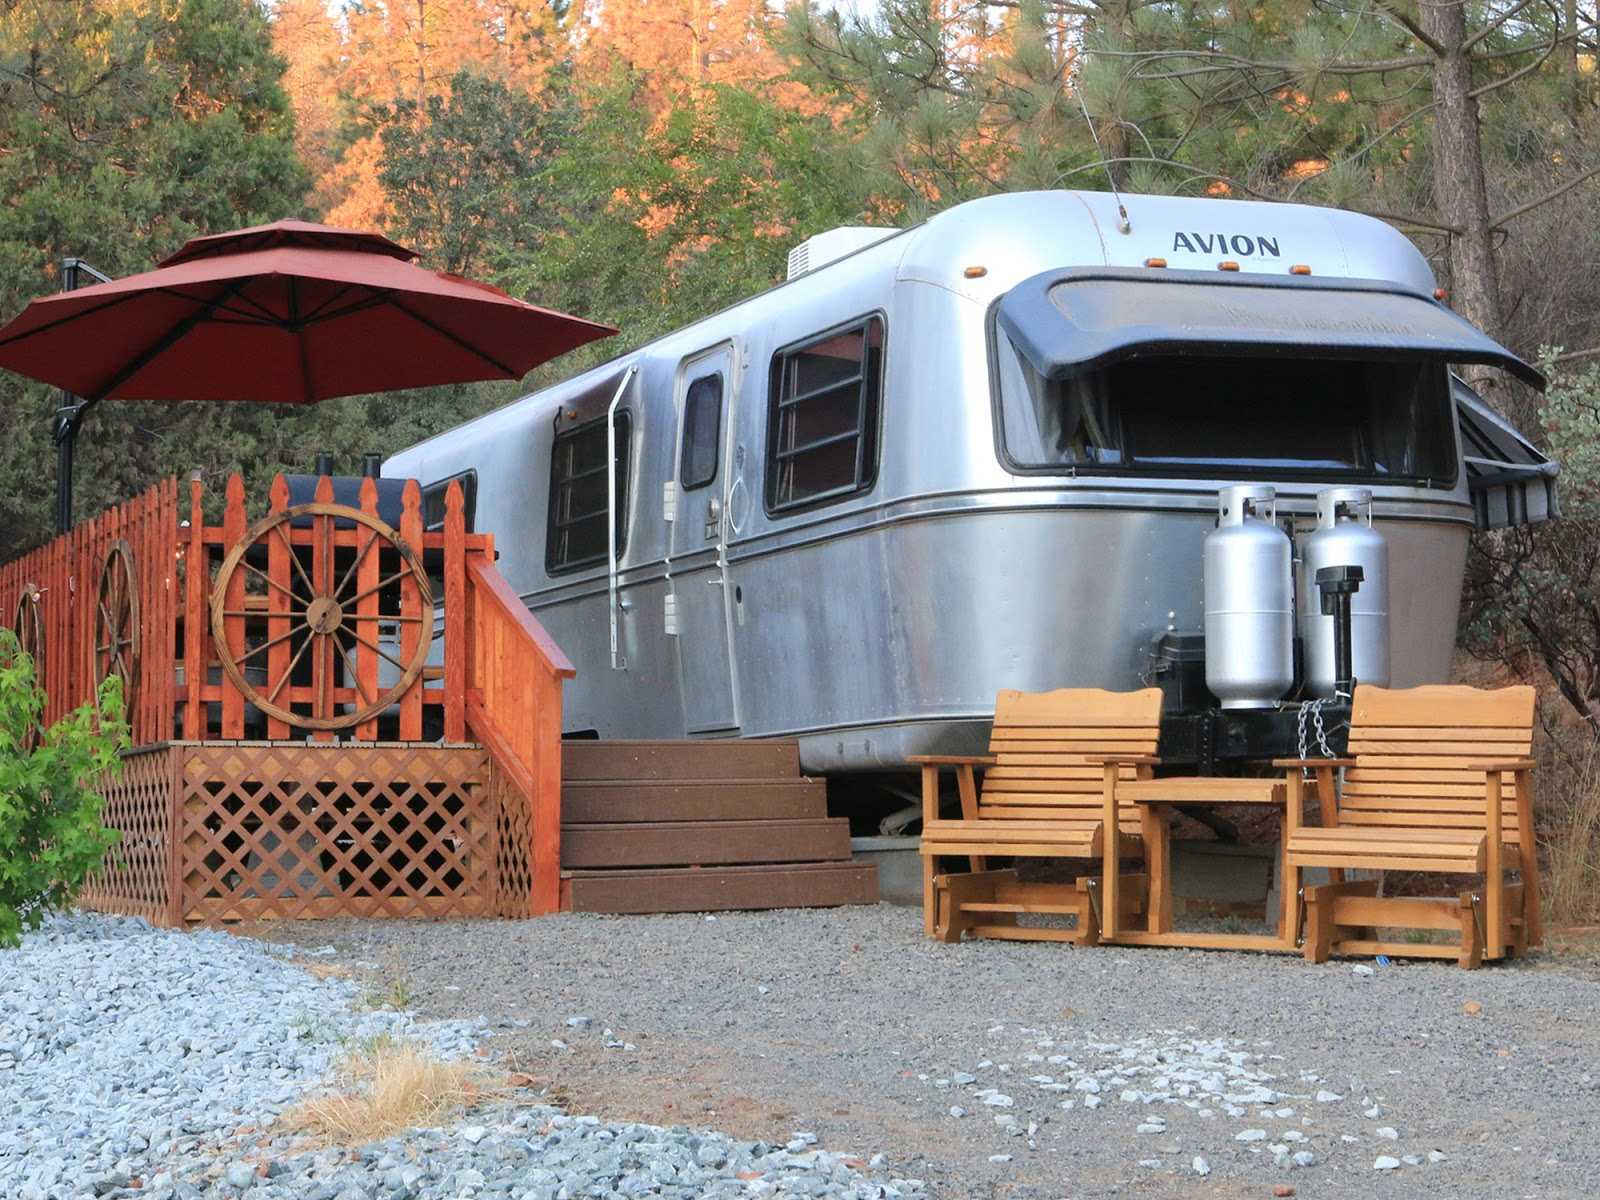 Yosemite Pines RV Resort and Family Lodging Releases